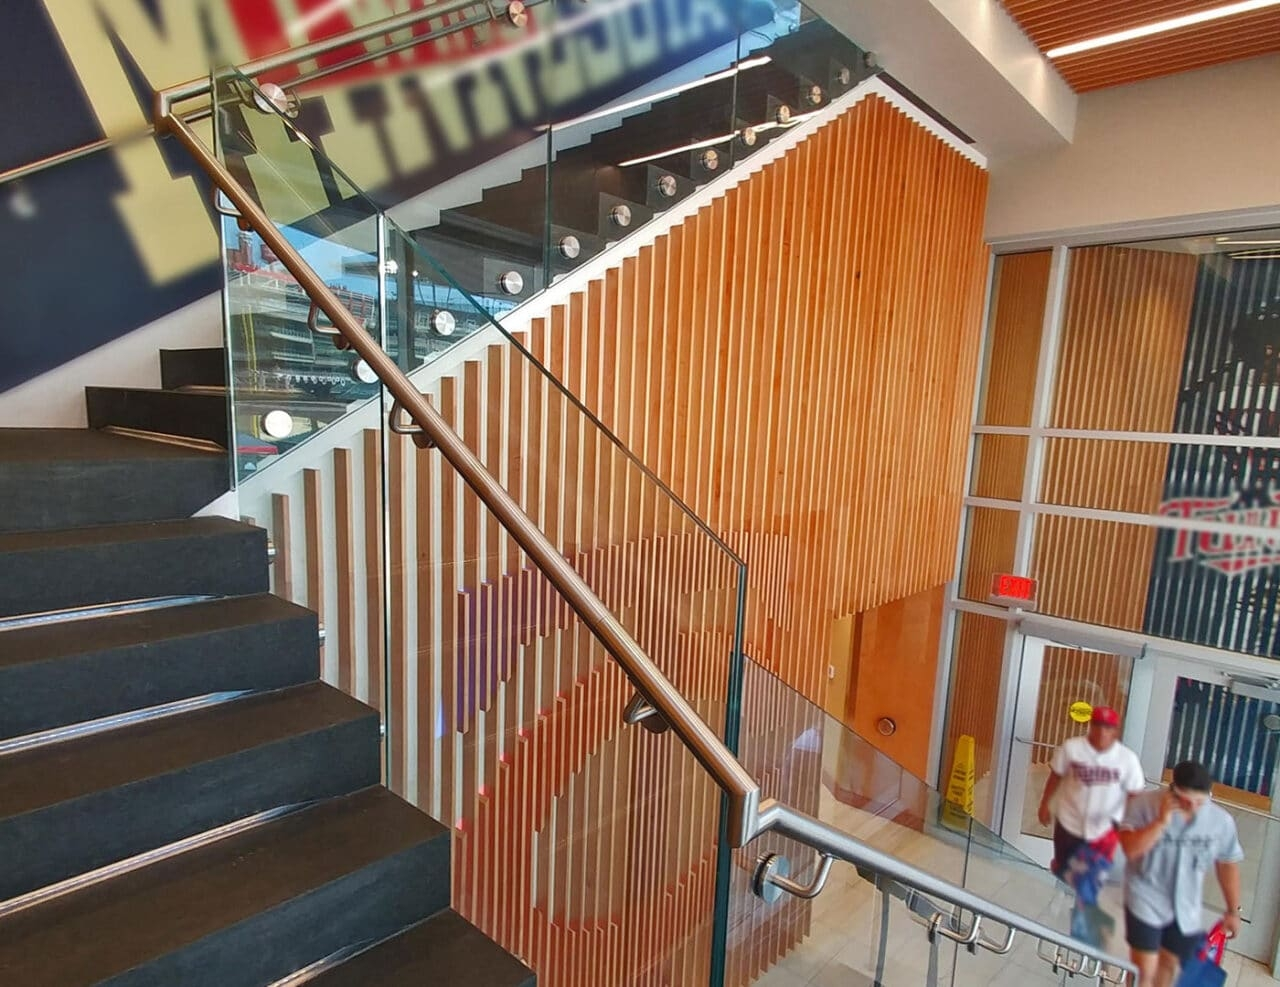 Fascia Node Mounted Glass Railing Trex Commercial Products   Clear Handrails For Stairs   Steel   Clear Acrylic   Wood   Riser   Metal